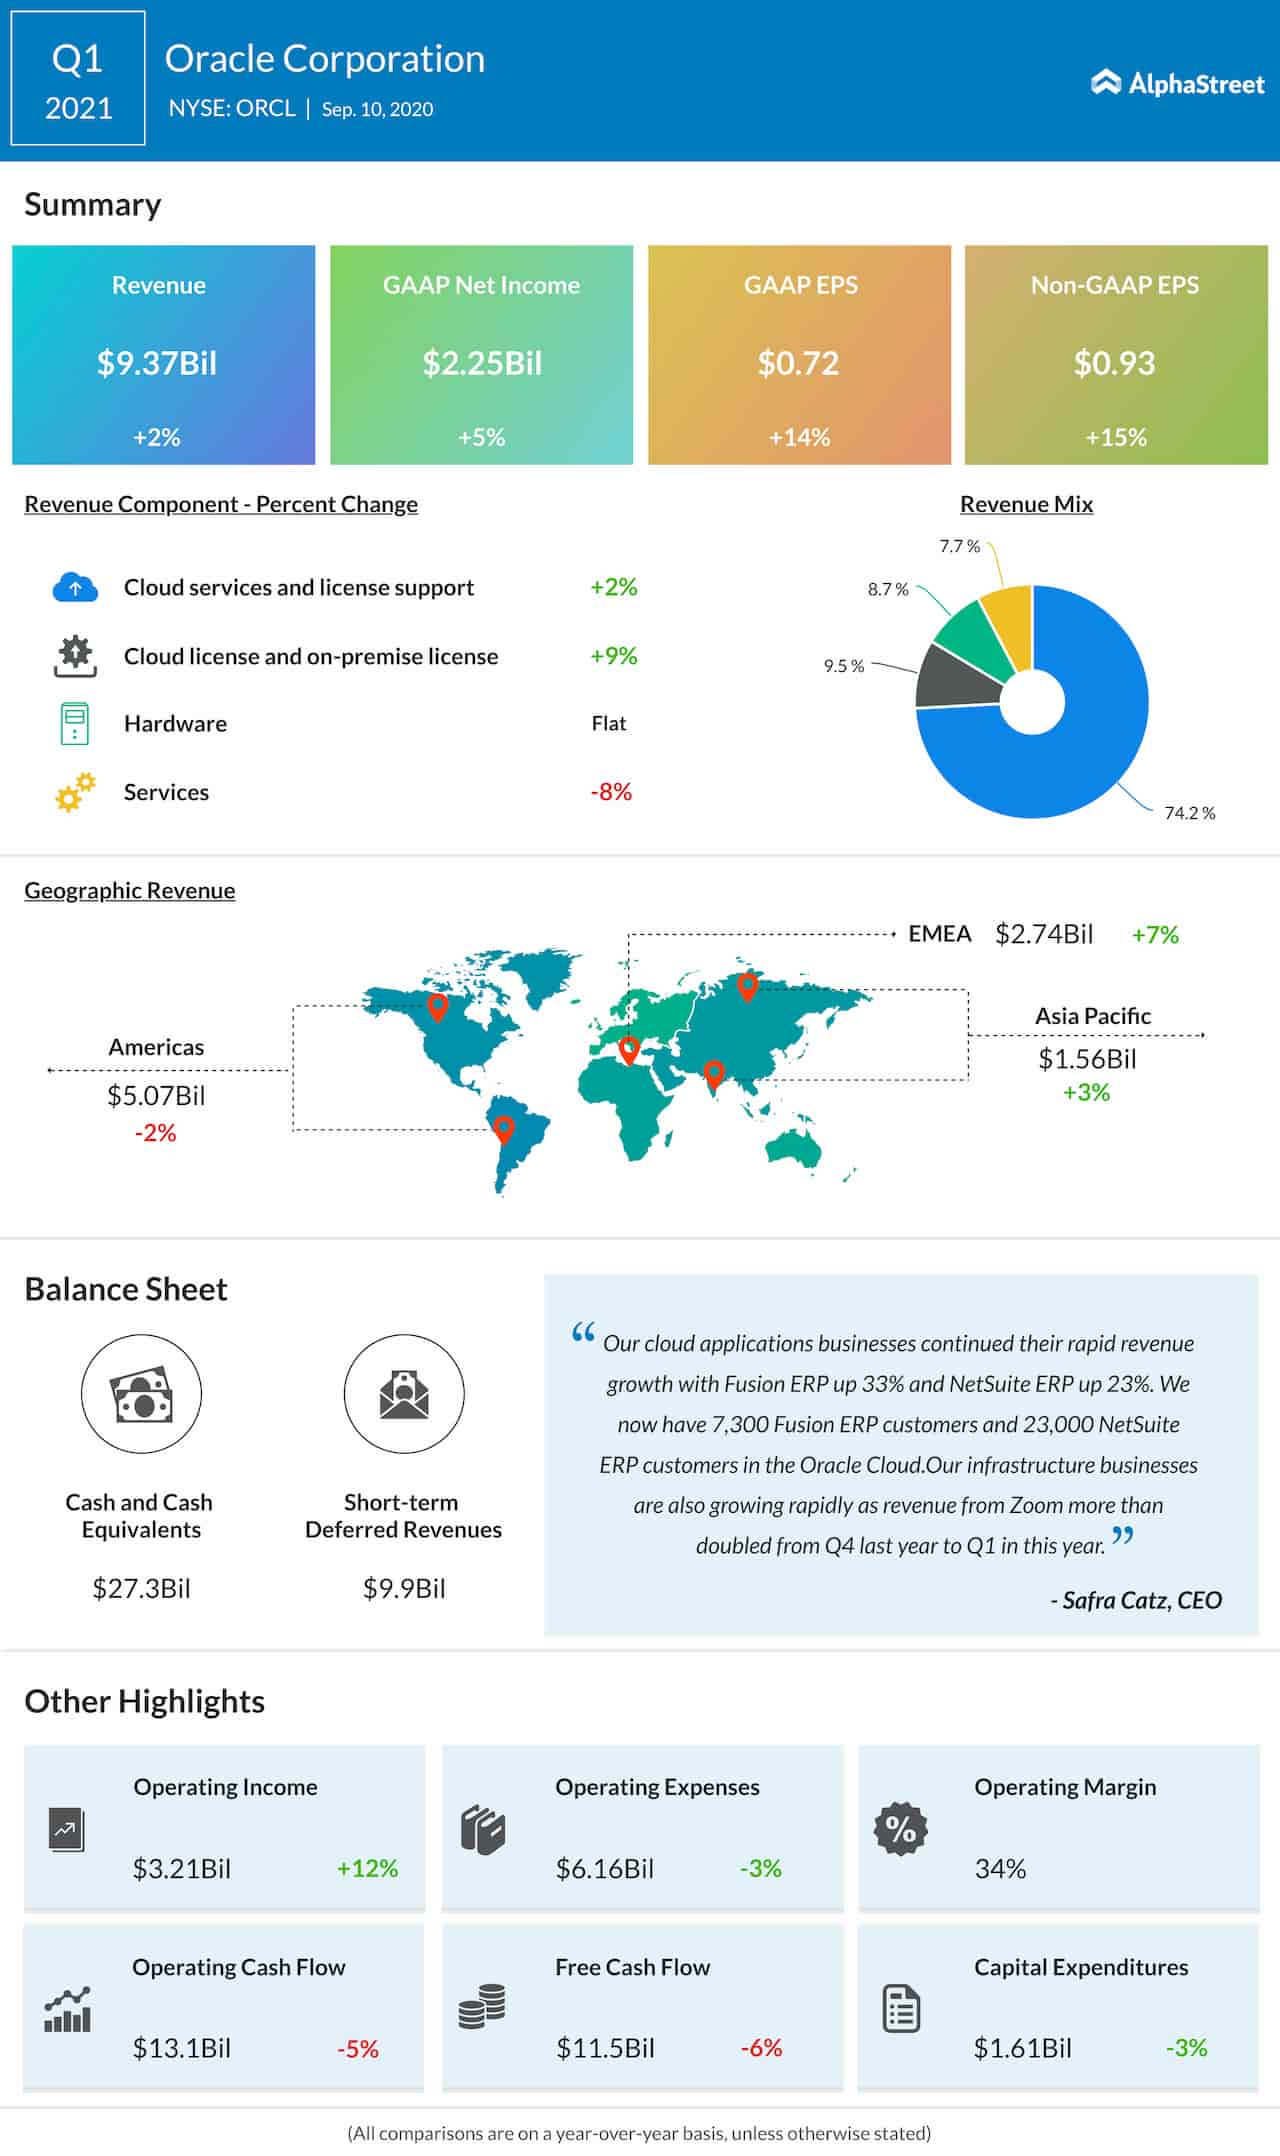 Oracle Corporation Q1 2021 Earnings Infographic